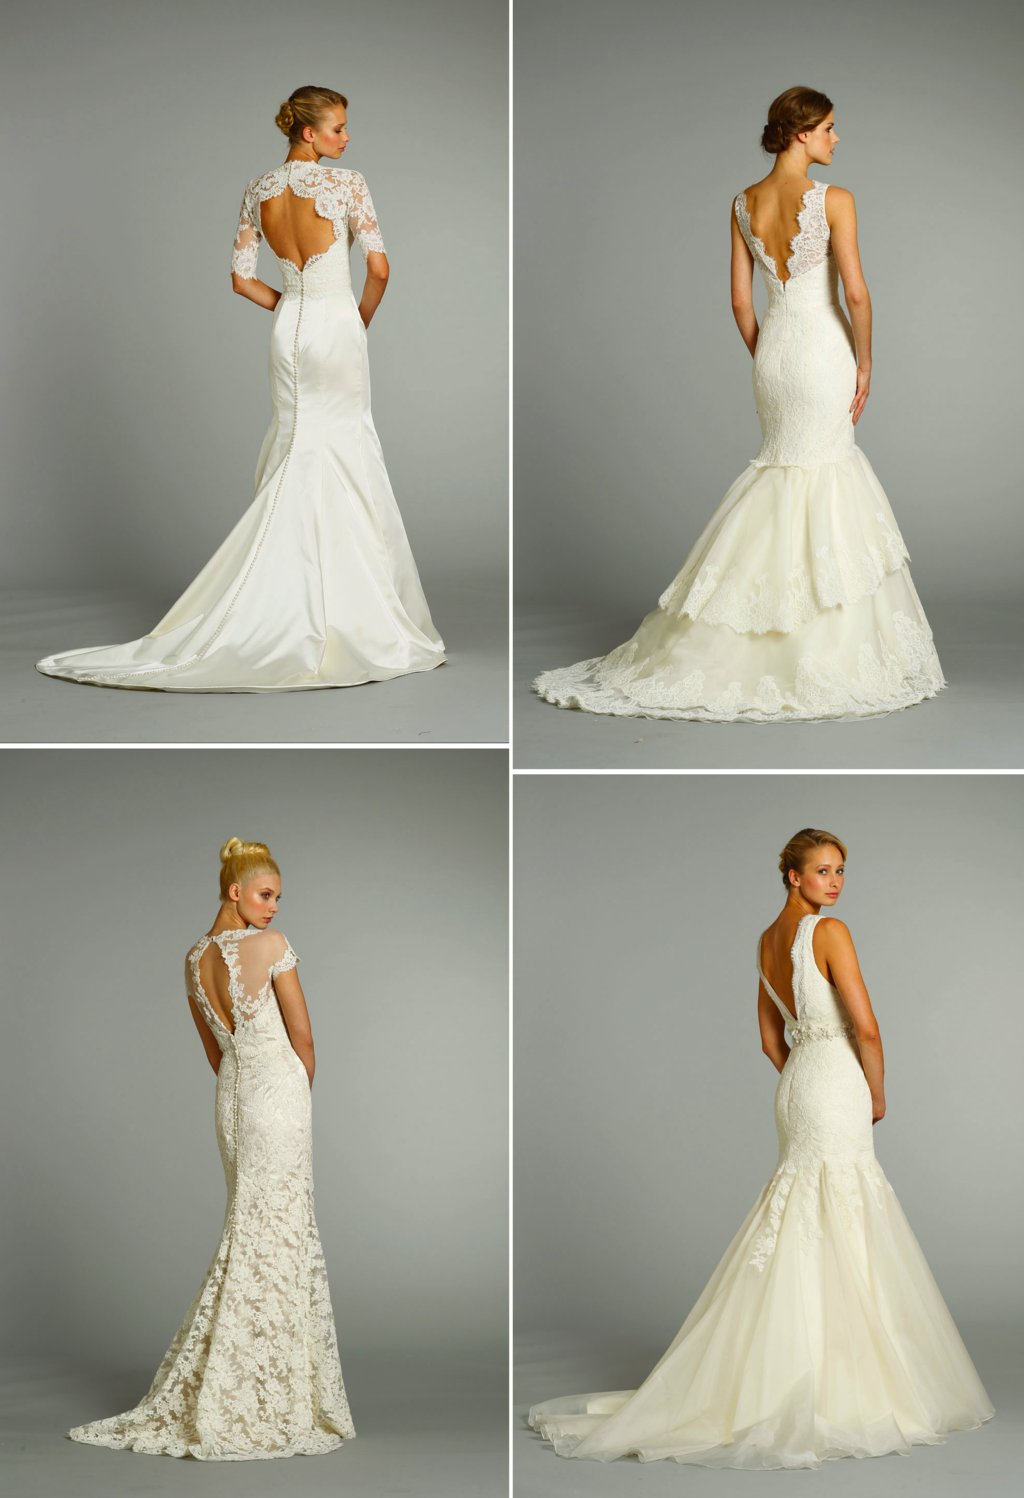 Romantic-2012-wedding-dresses-lace-with-statement-backs-by-jim-hjelm.full